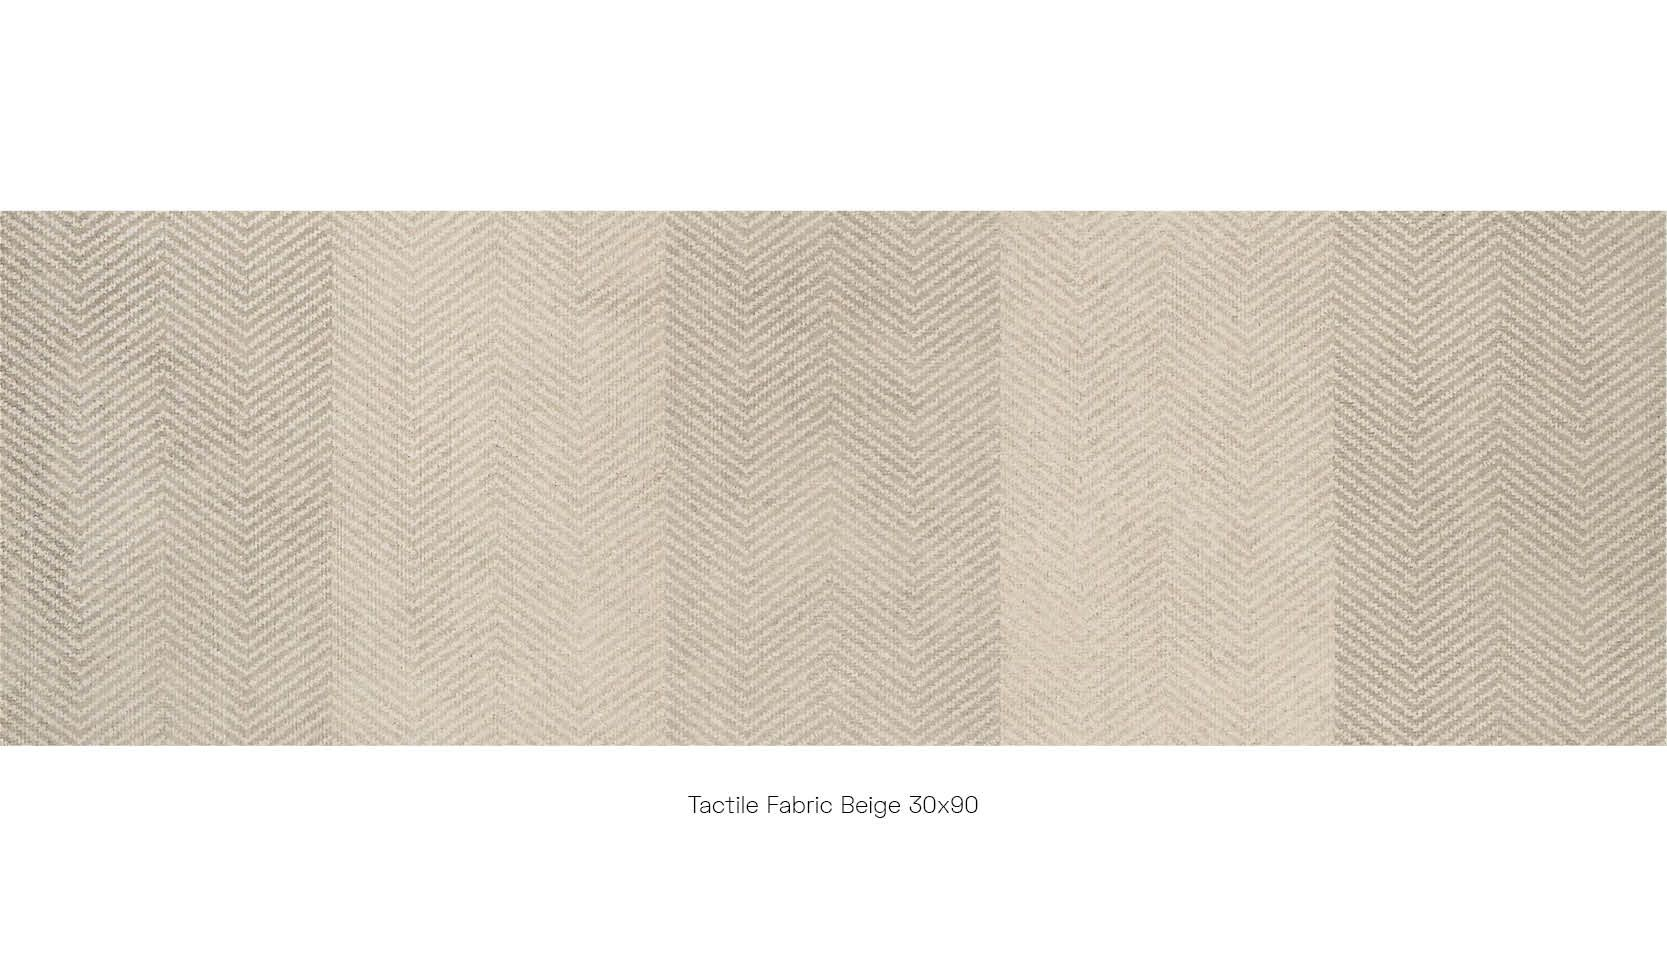 Tactile fabric beige 30 x 90